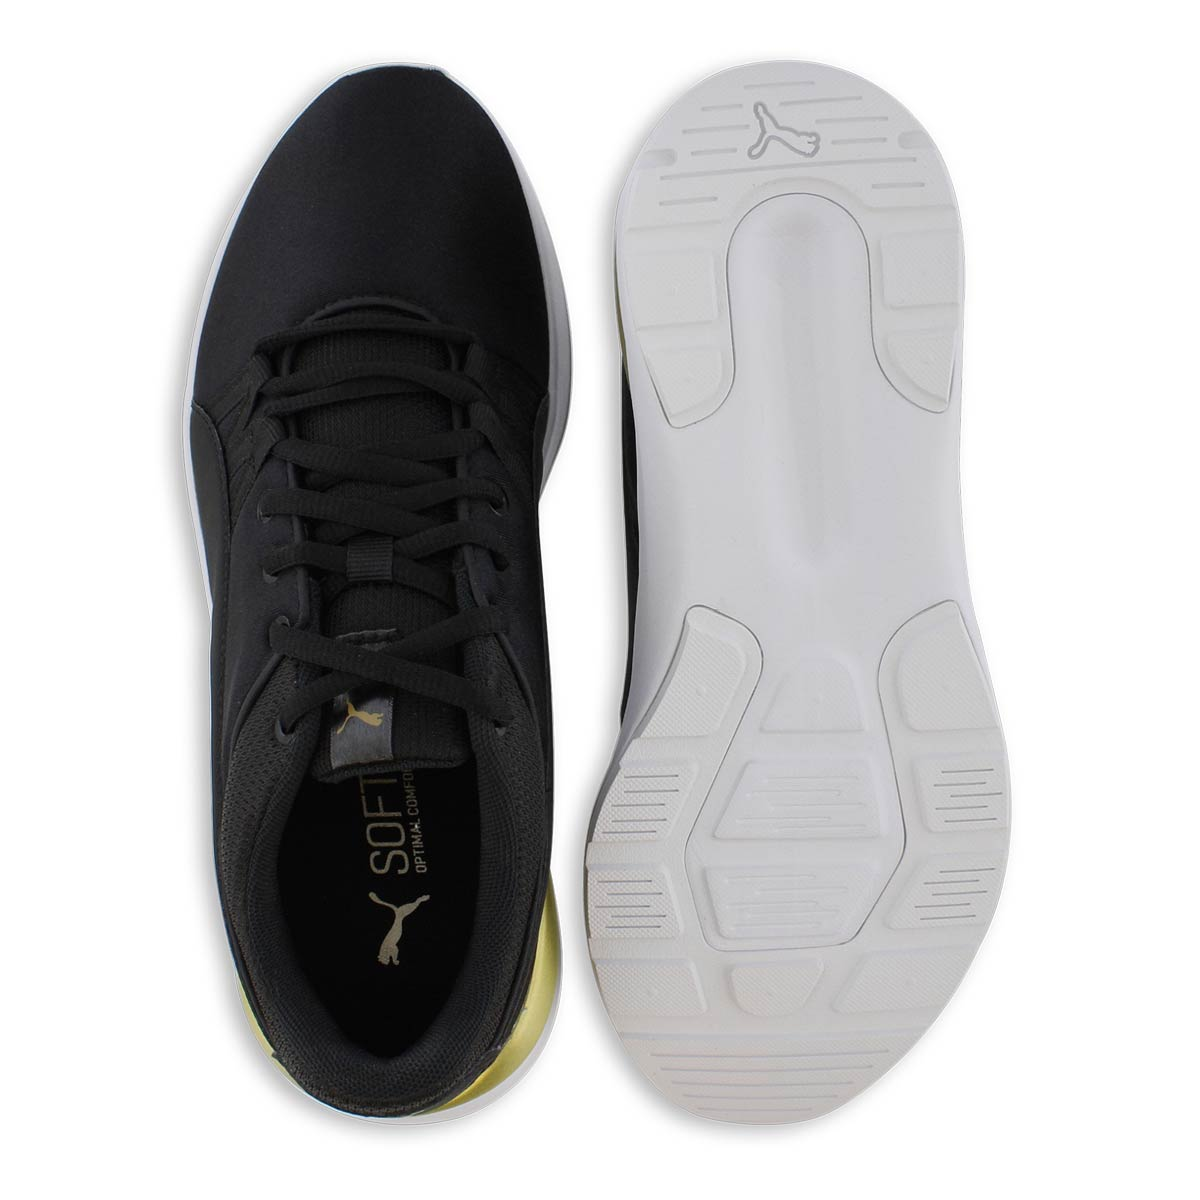 Lds Adela black lace up sneaker